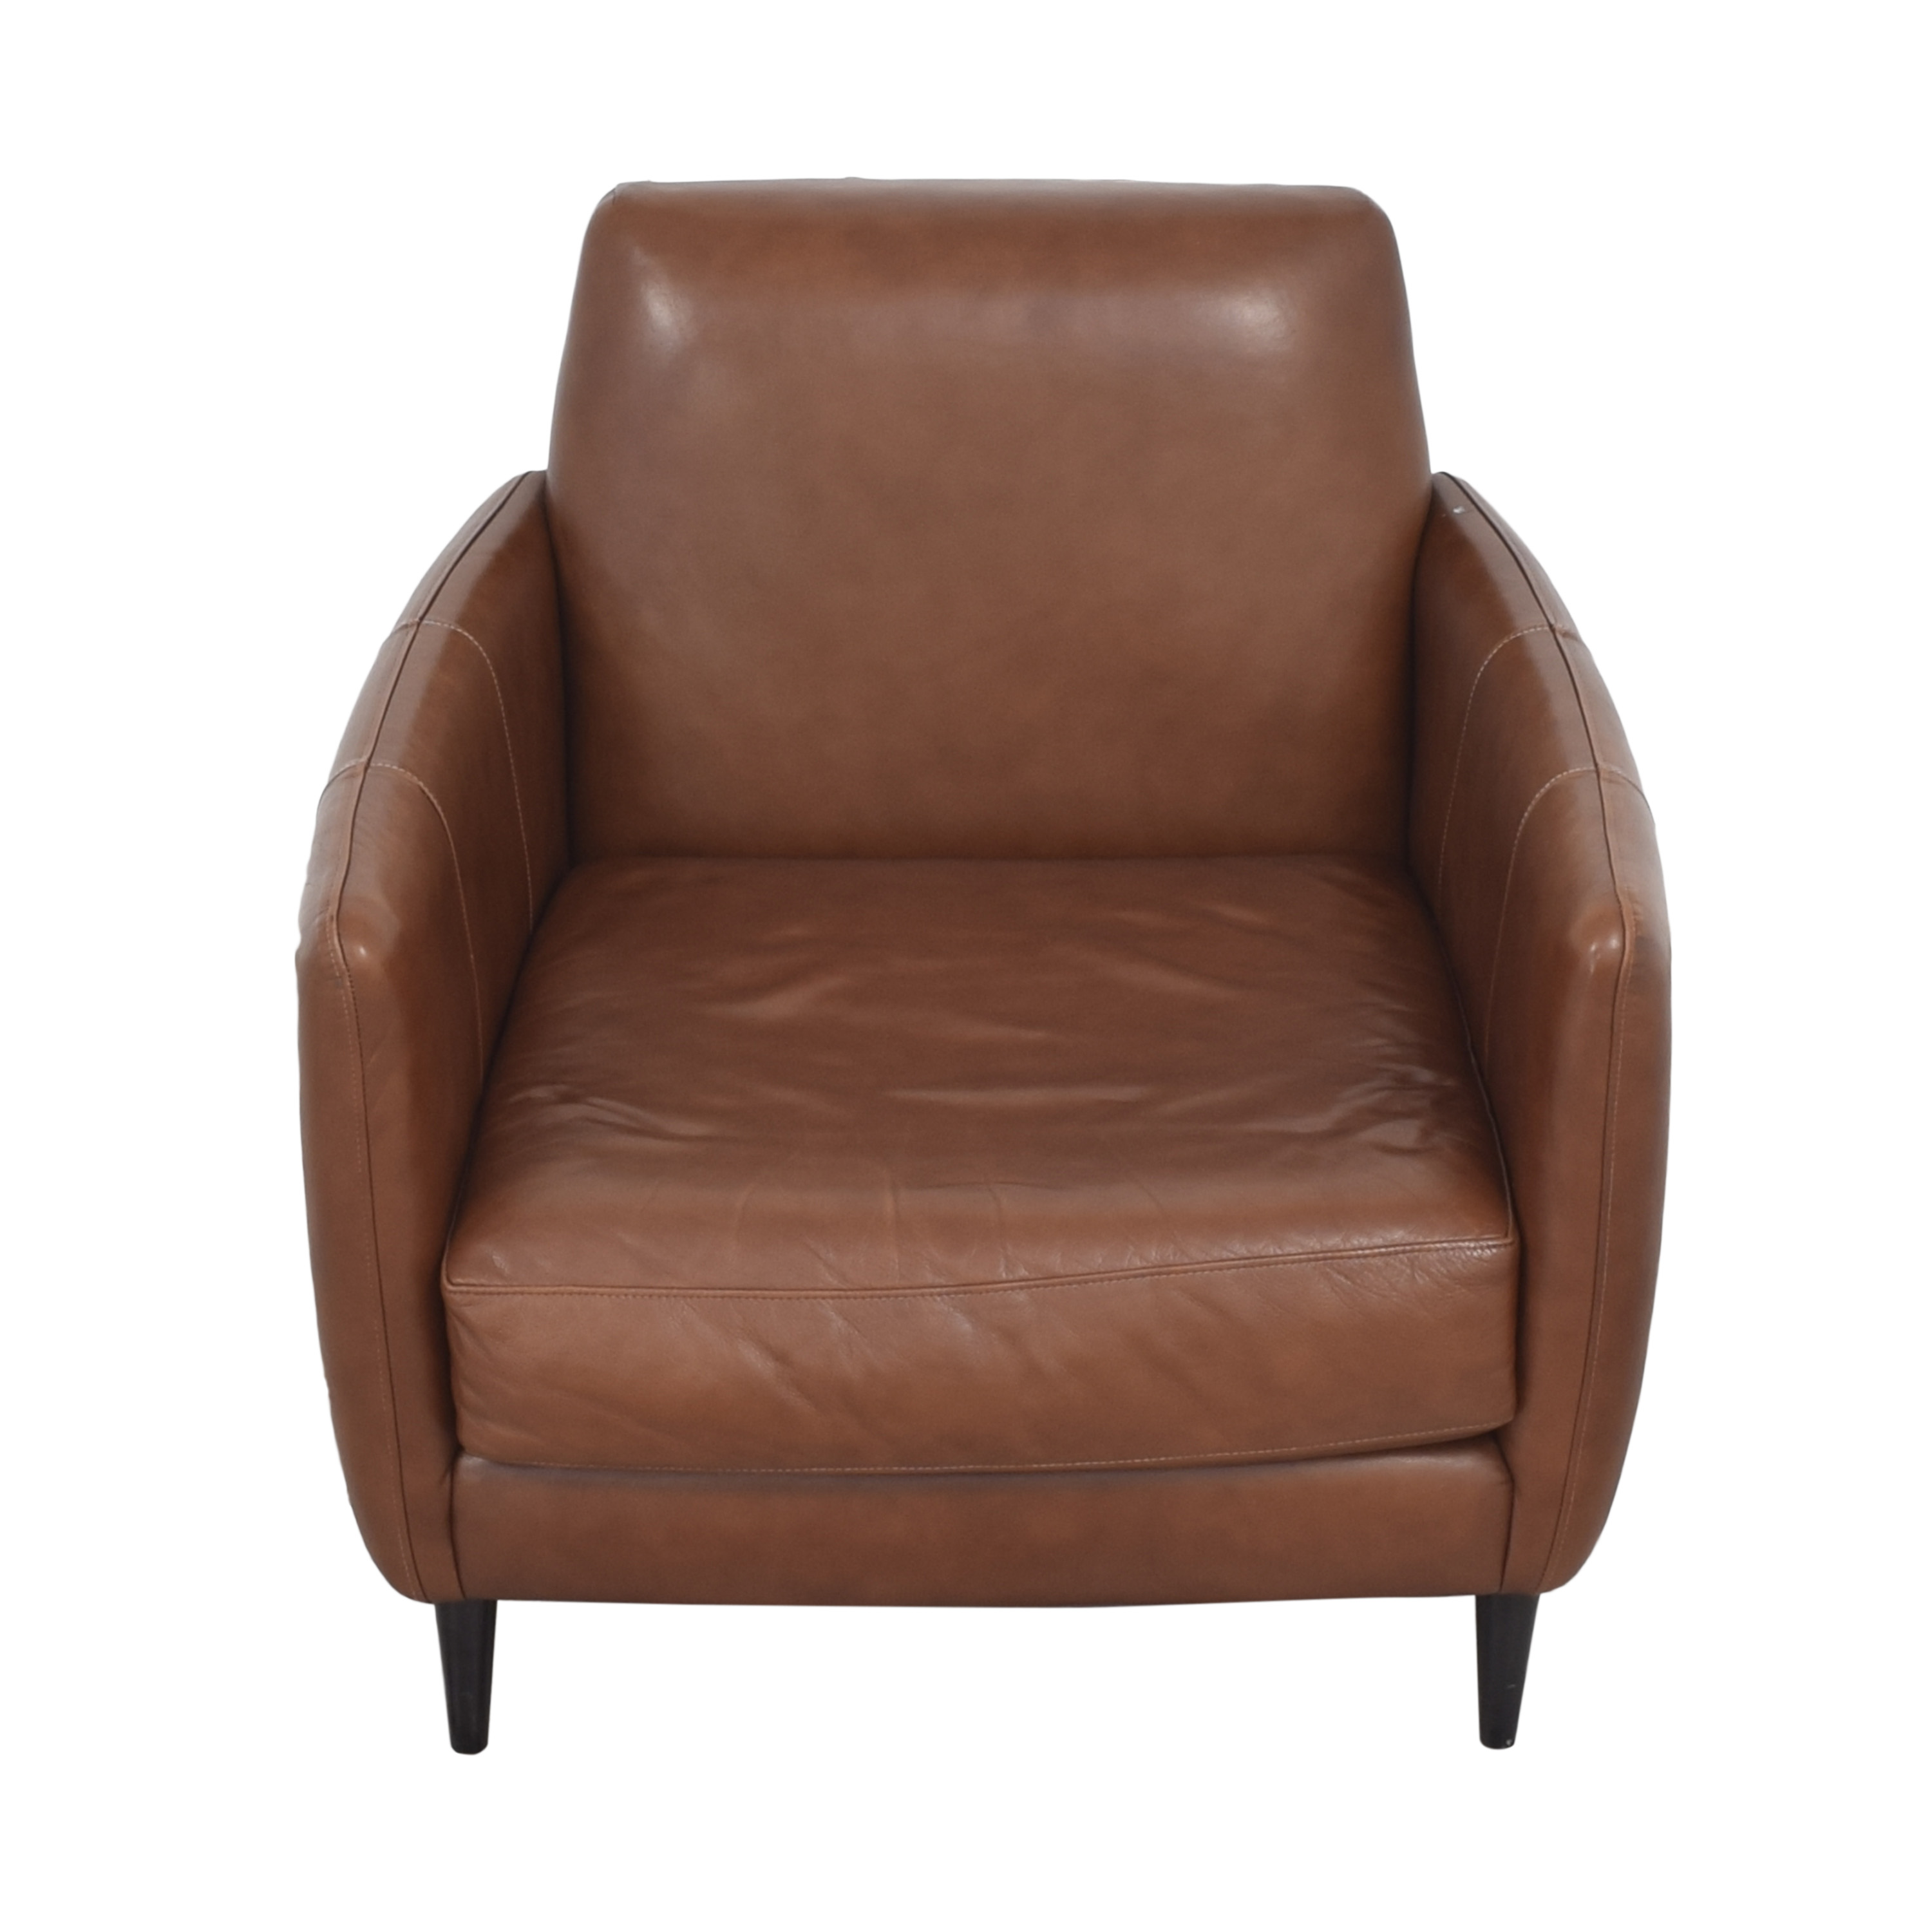 CB2 Parlour Accent Chair / Accent Chairs